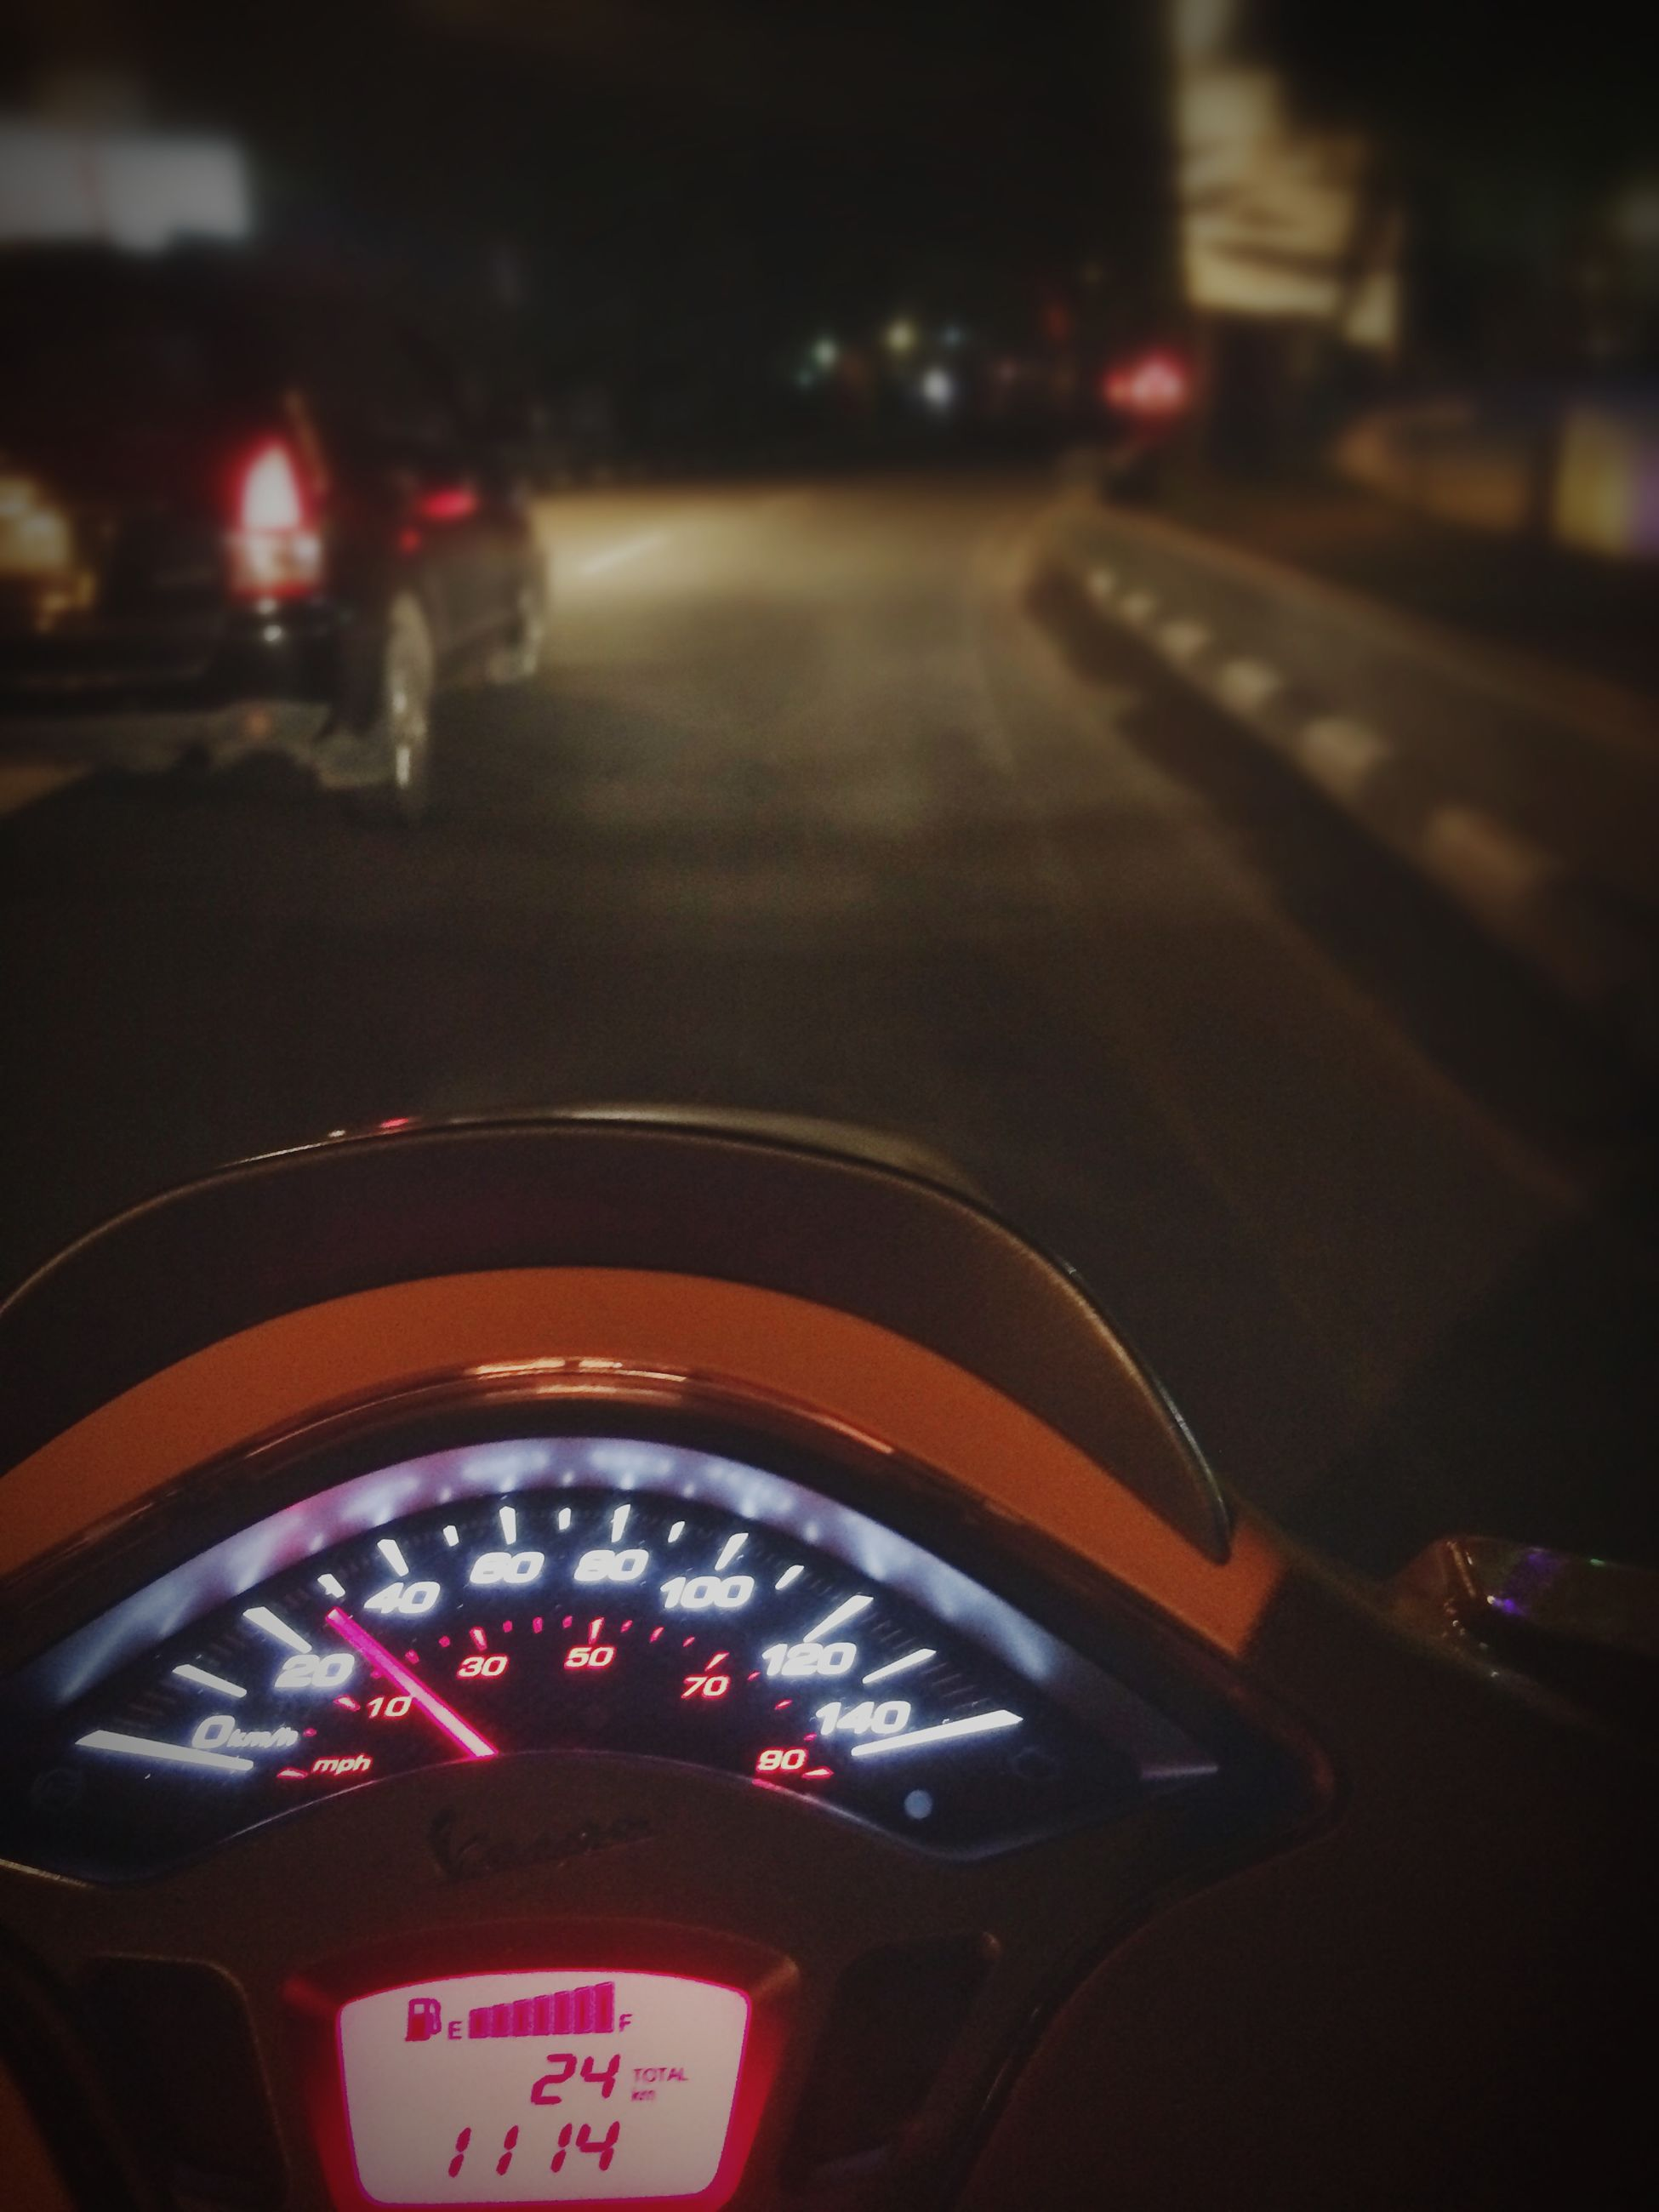 transportation, car, land vehicle, mode of transport, road, car interior, travel, vehicle interior, street, traffic, on the move, illuminated, windshield, dashboard, headlight, night, part of, road marking, car point of view, close-up